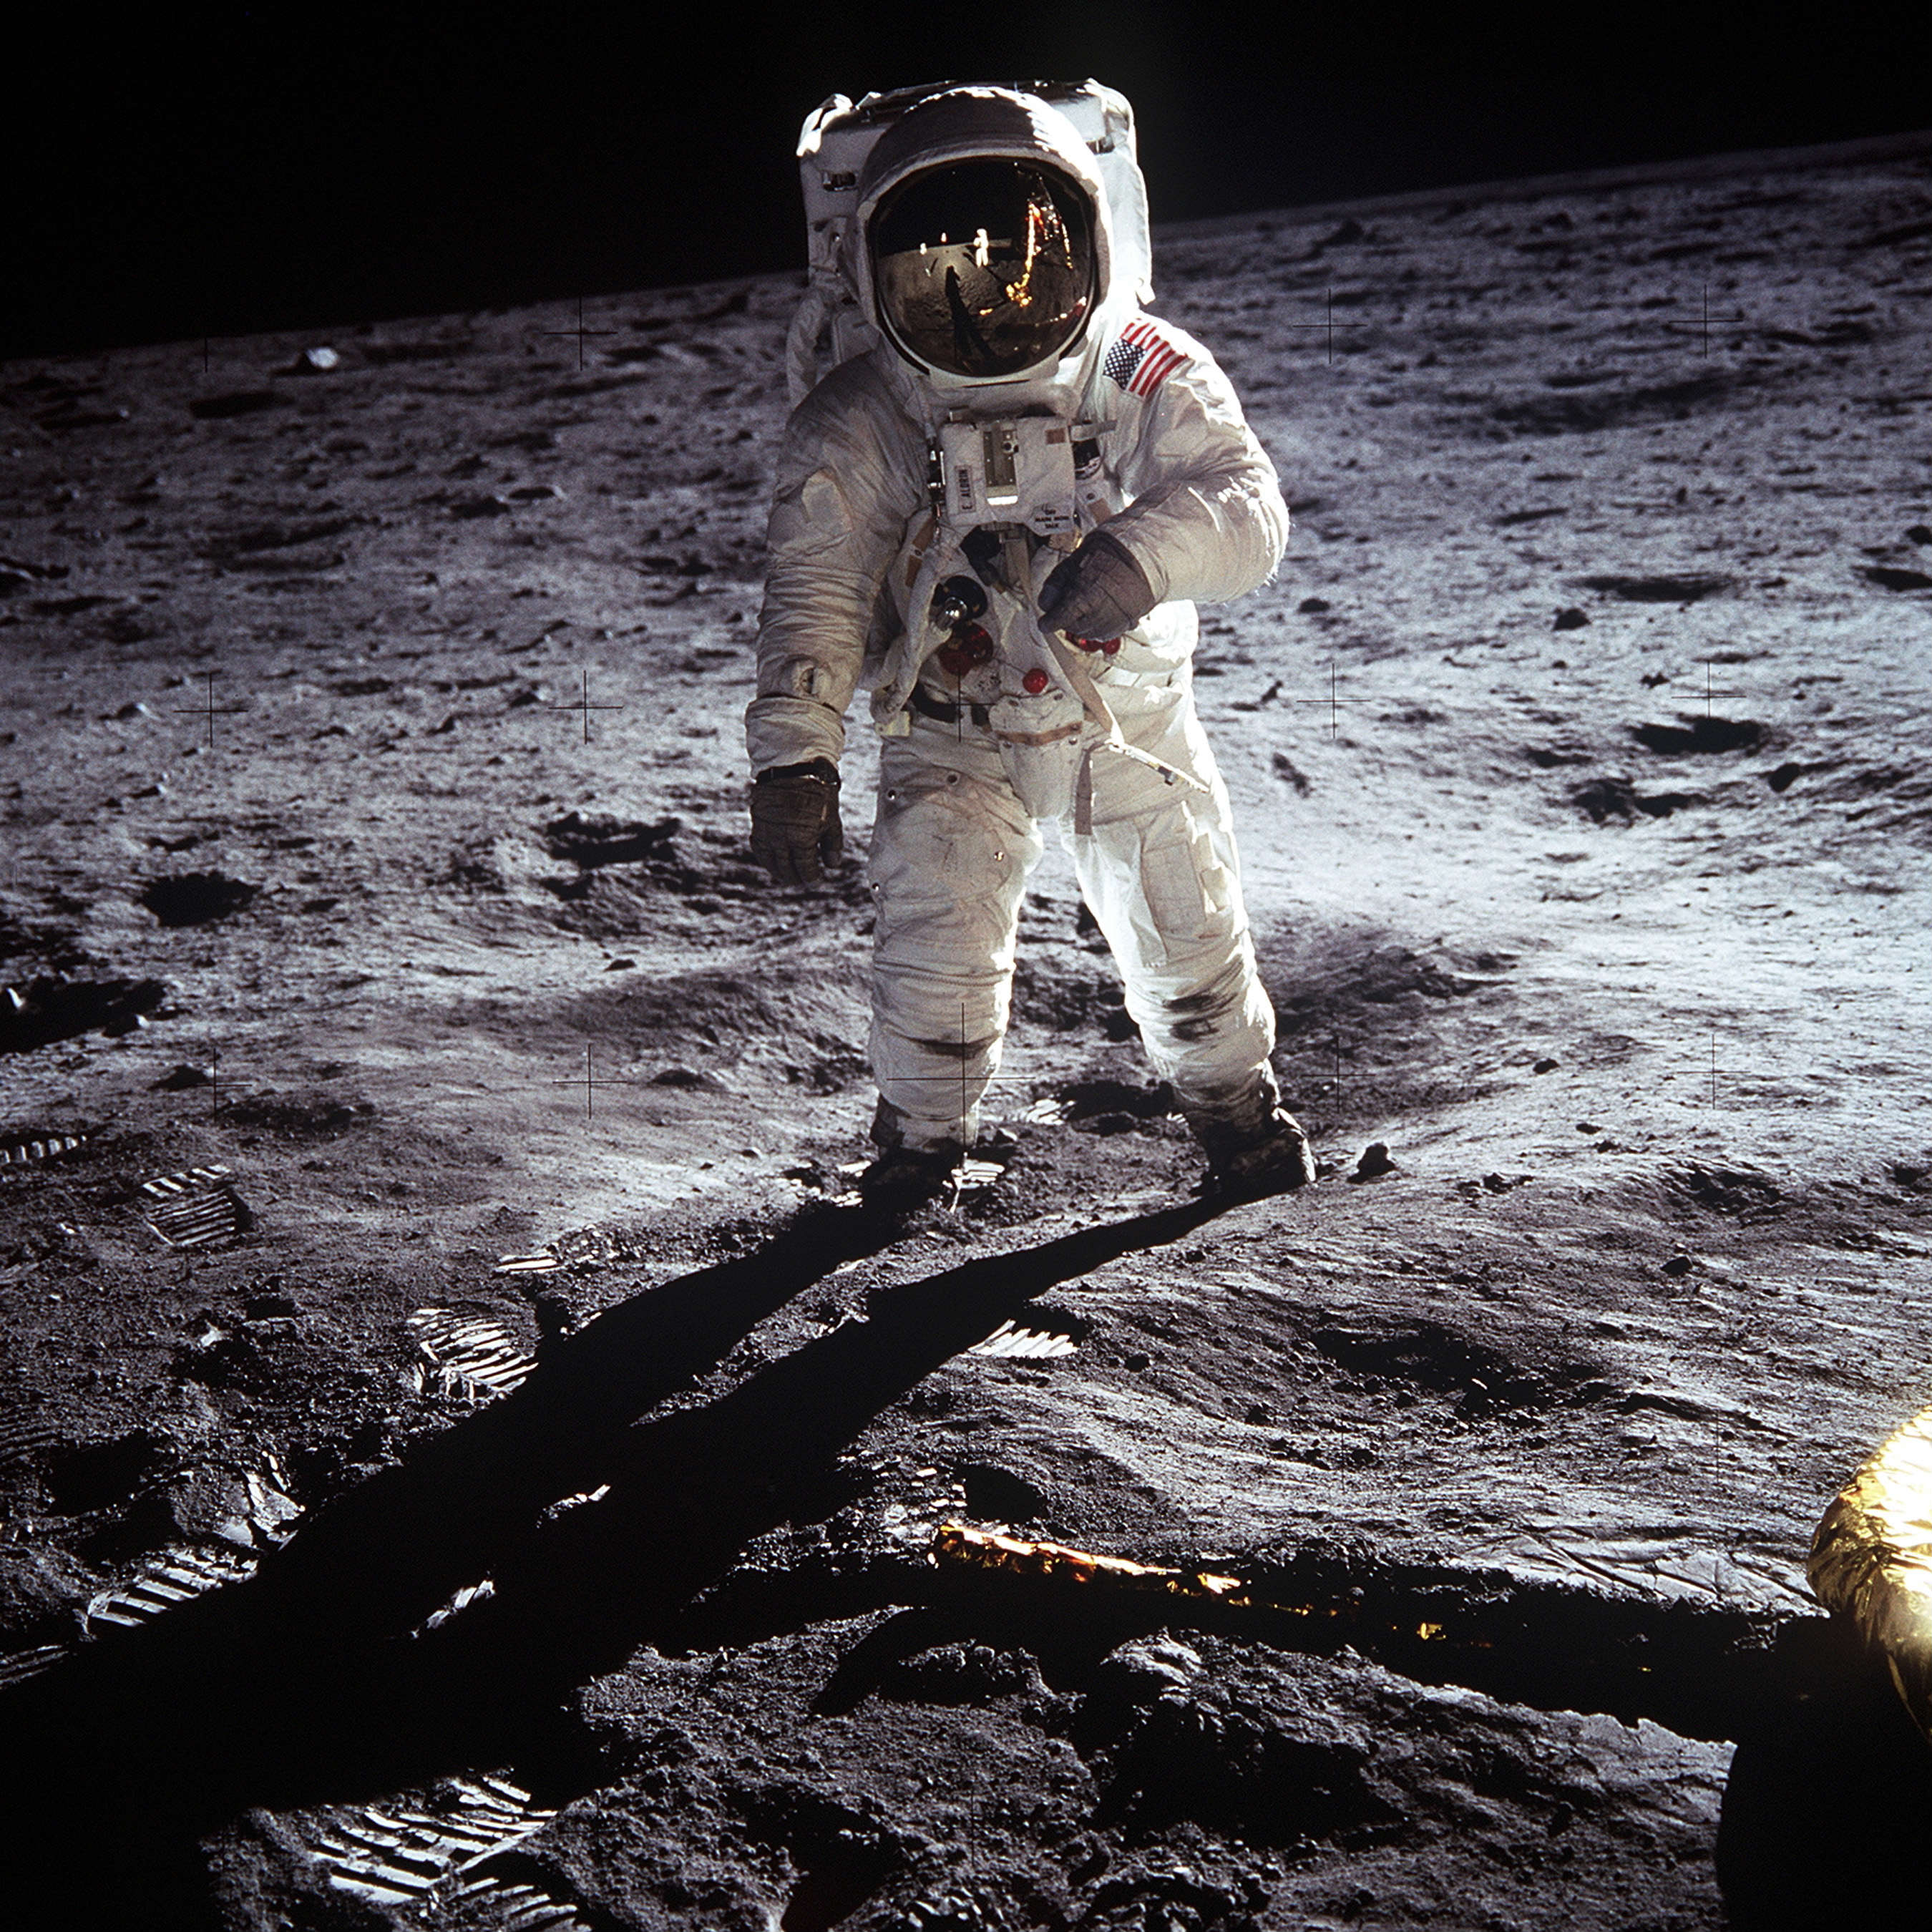 """This NASA file image shows Apollo 11 U.S. astronaut Buzz Aldrin standing on the Moon, next to the Lunar Module """"Eagle"""" (R), July 20, 1969. Apollo 11 was launched forty years ago today on July 16, 1969, and carried astronauts Neil Armstrong, who was the Mission Commander and the first man to step on the Moon, Aldrin, who was the Lunar Module Pilot, and Michael Collins, who was the Command Module pilot. Armstrong took this photograph. REUTERS/Neil Armstrong-NASA/Handout"""